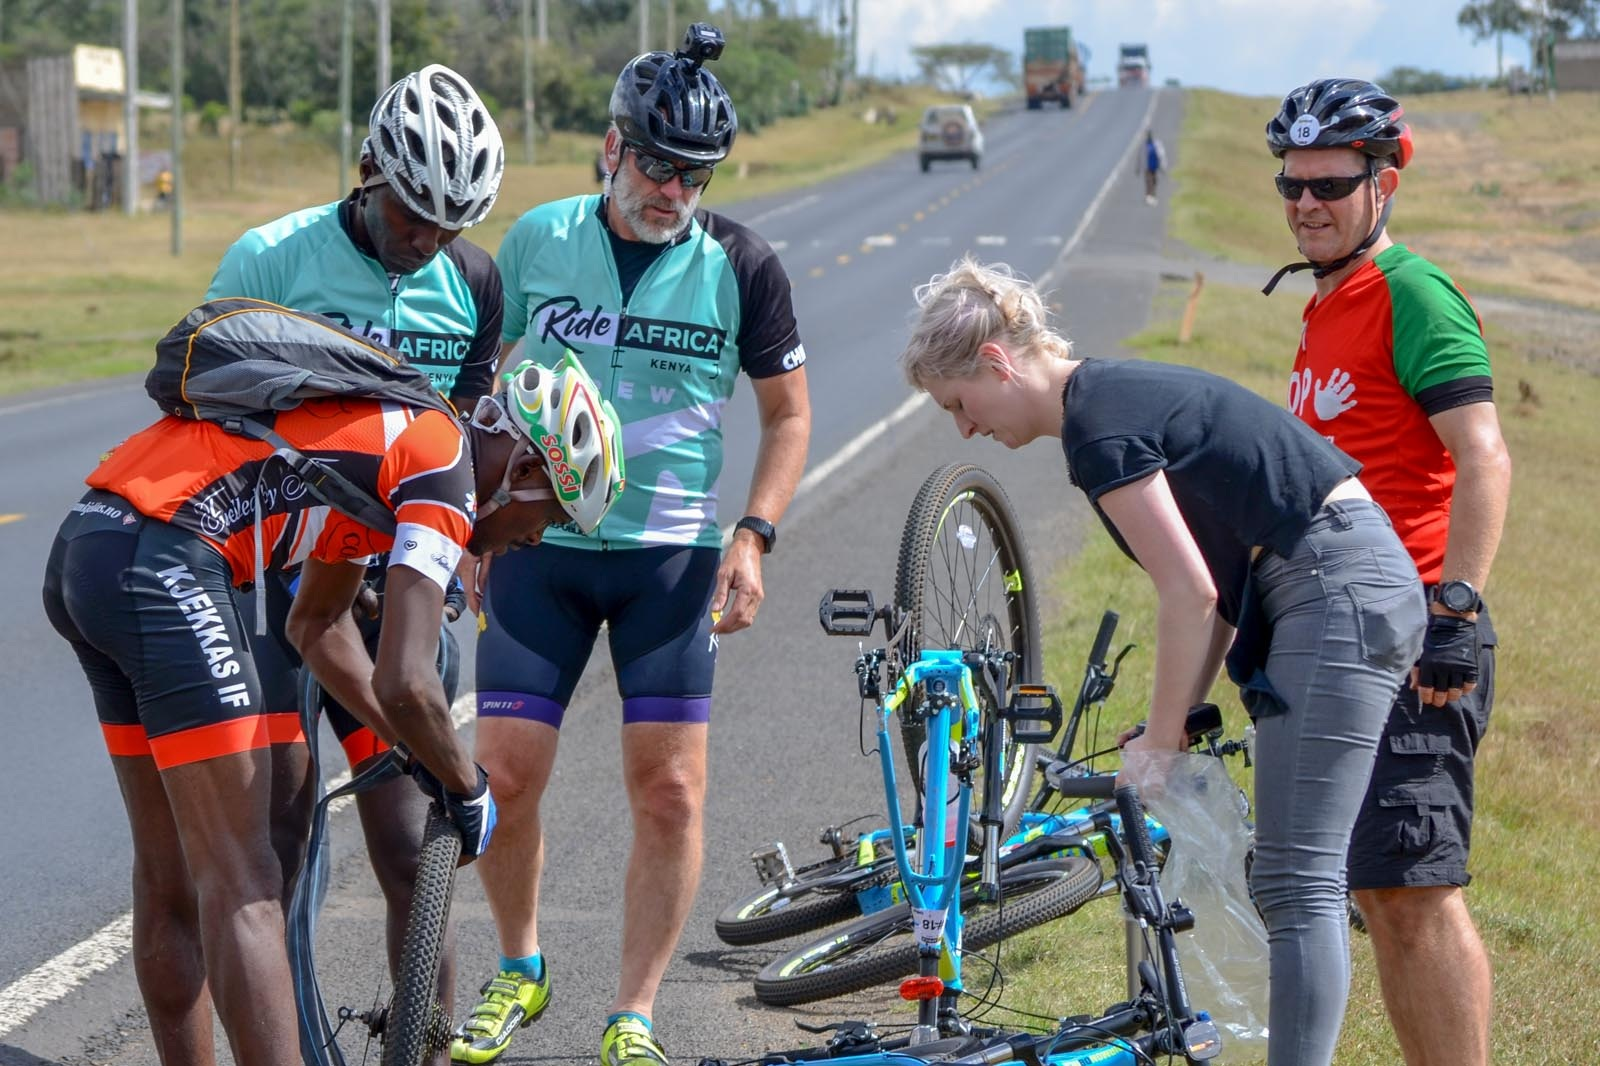 Cycle guides and mechanics - We have a substantial team travelling with you at all times. If you get a puncture, if you're struggling… they'll know it and be on hand to help you, and take care of our bike.